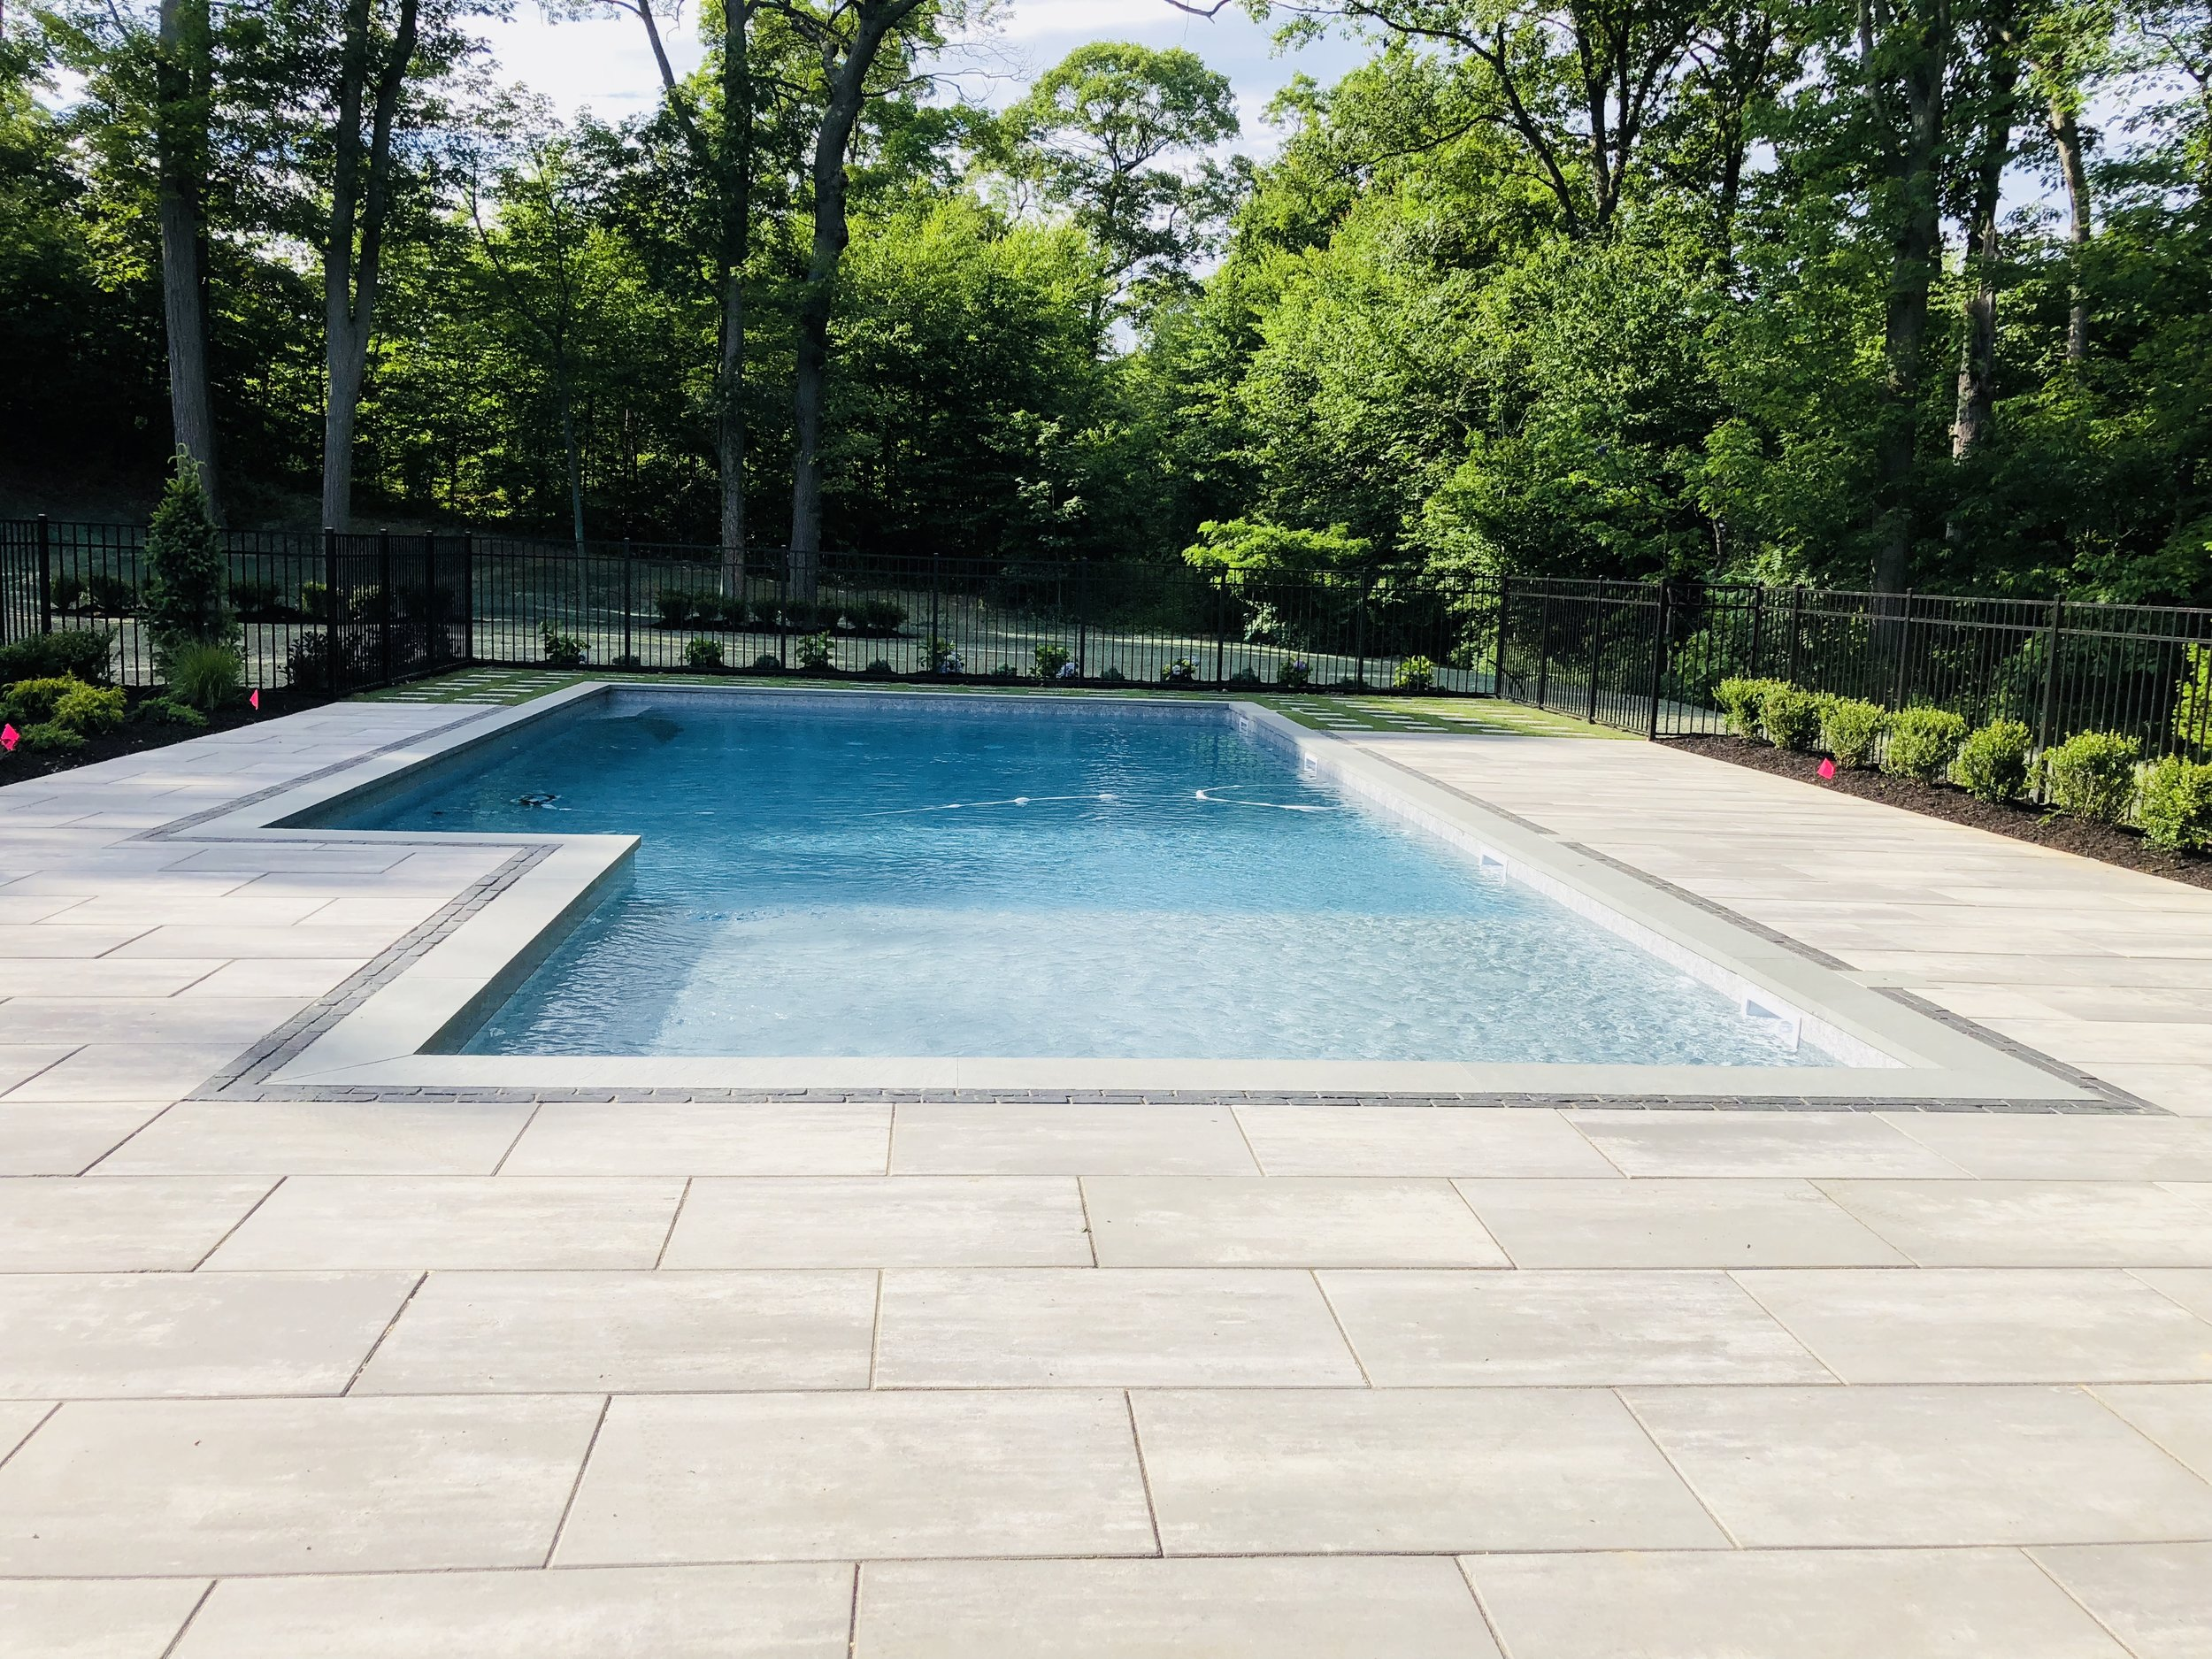 5 Sleek and Stylish Swimming Pool Designs to Consider for Your Melville, NY, Home